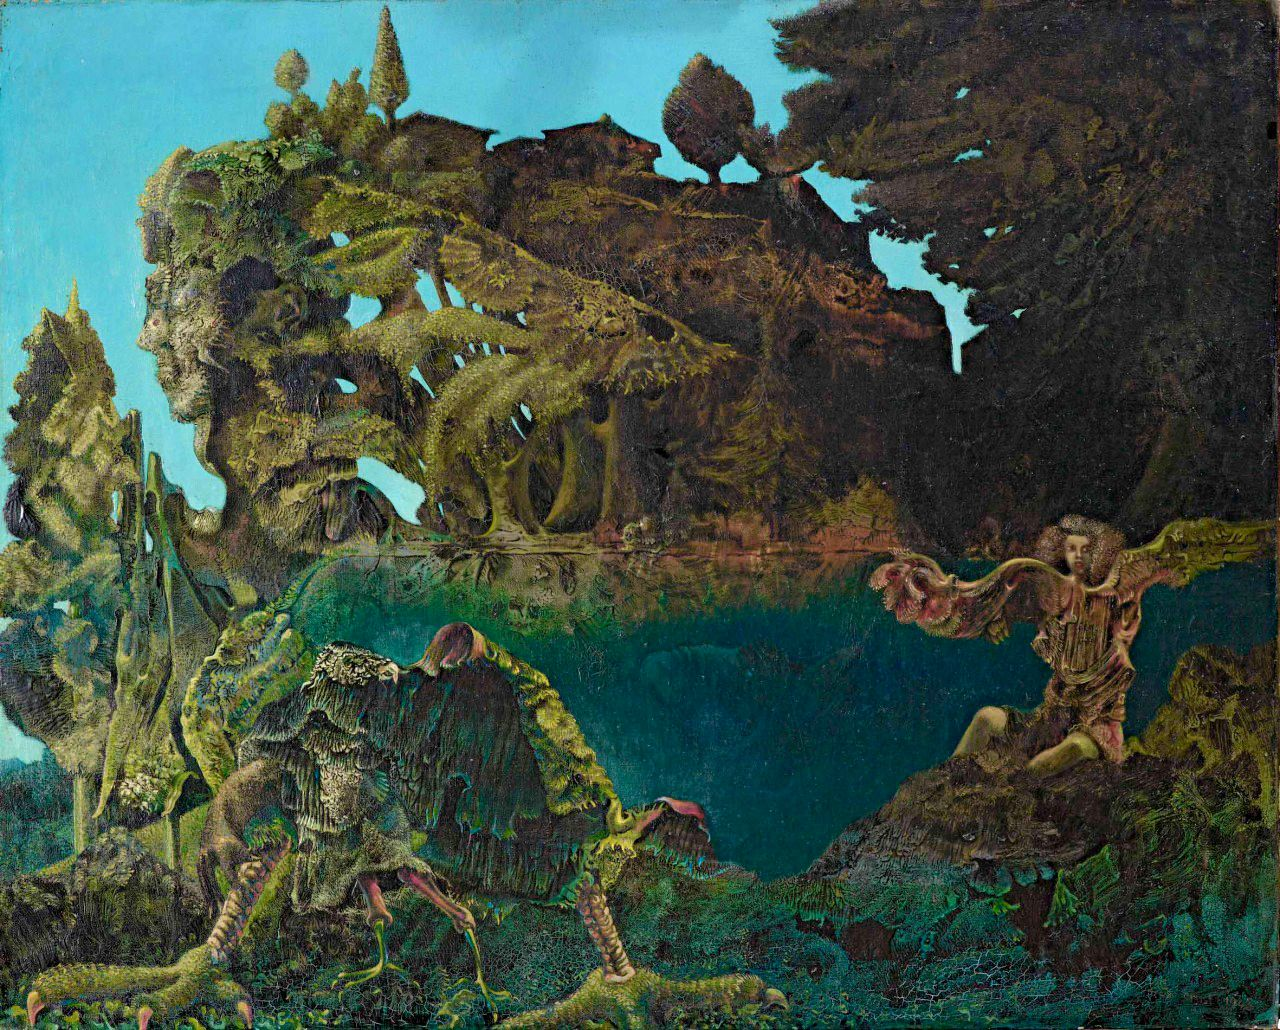 Hideback Max Ernst German 1891-1976 Swampangel 1940 - Surrealists Surrealism